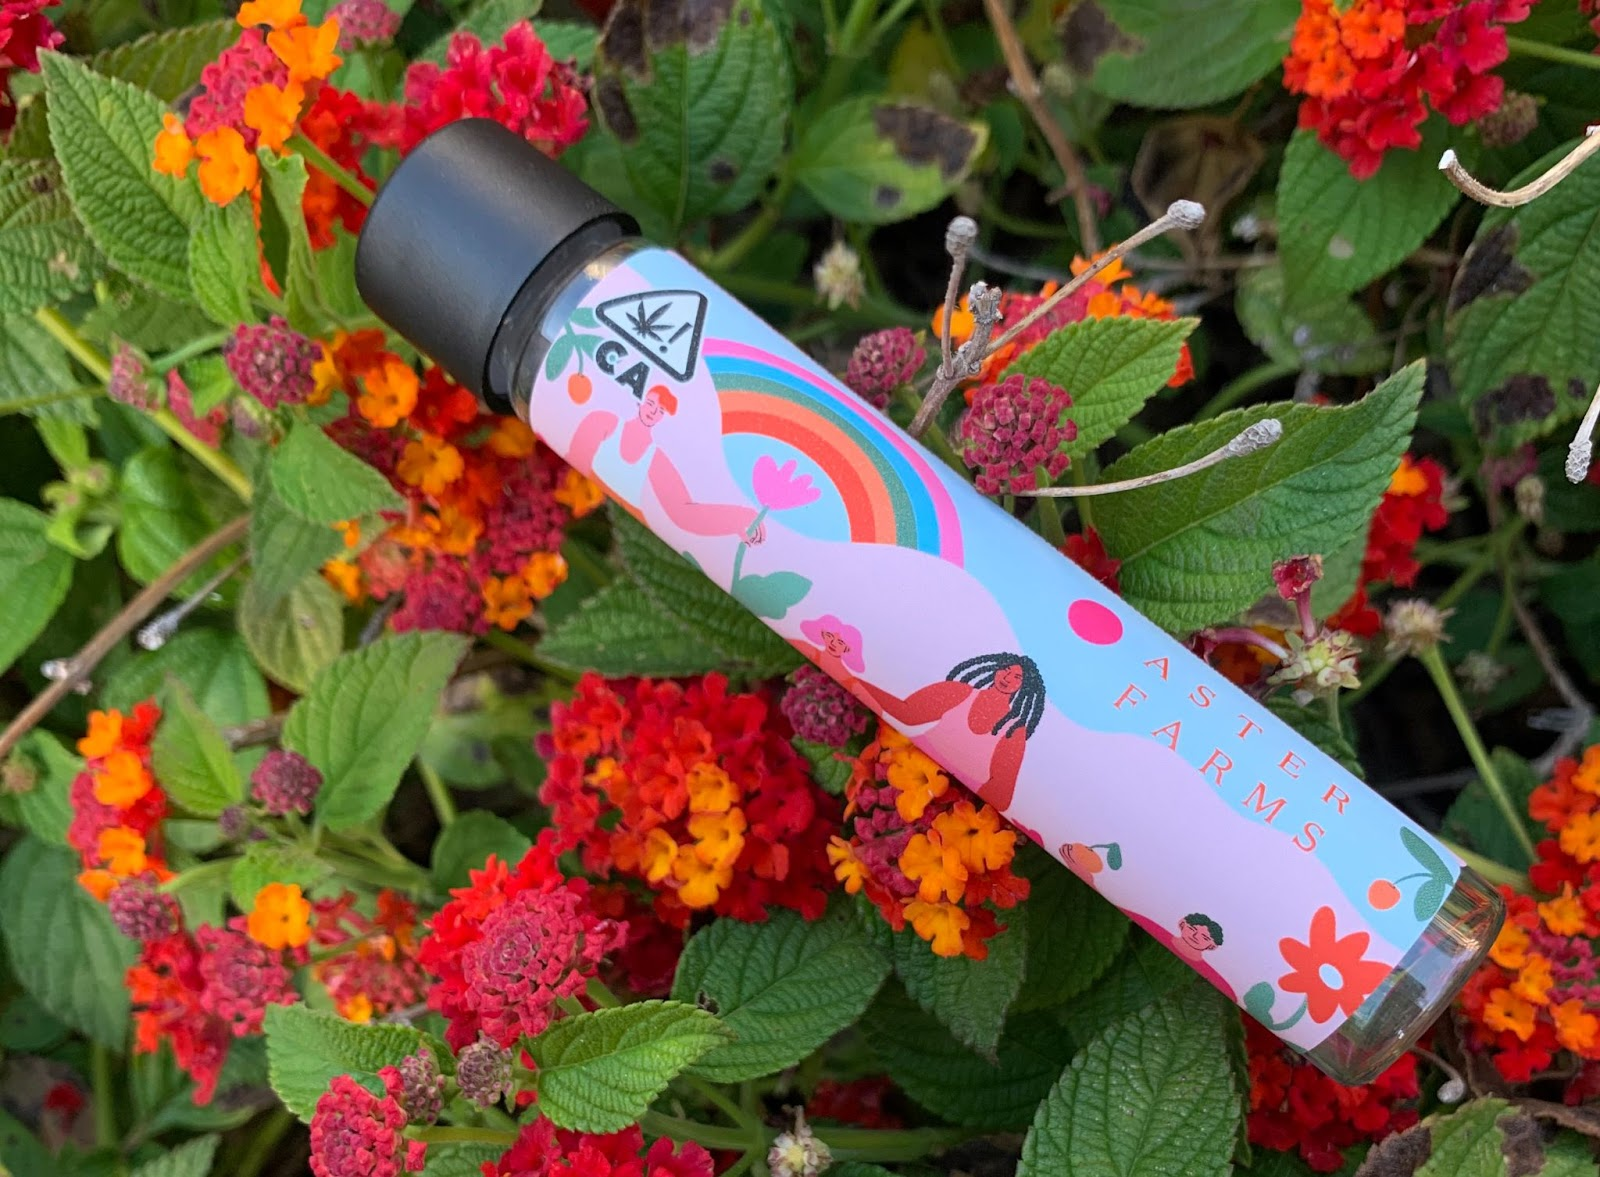 6 new weed products to try from Rolling Stone, Aster Farms, Laganja Estranja, and more